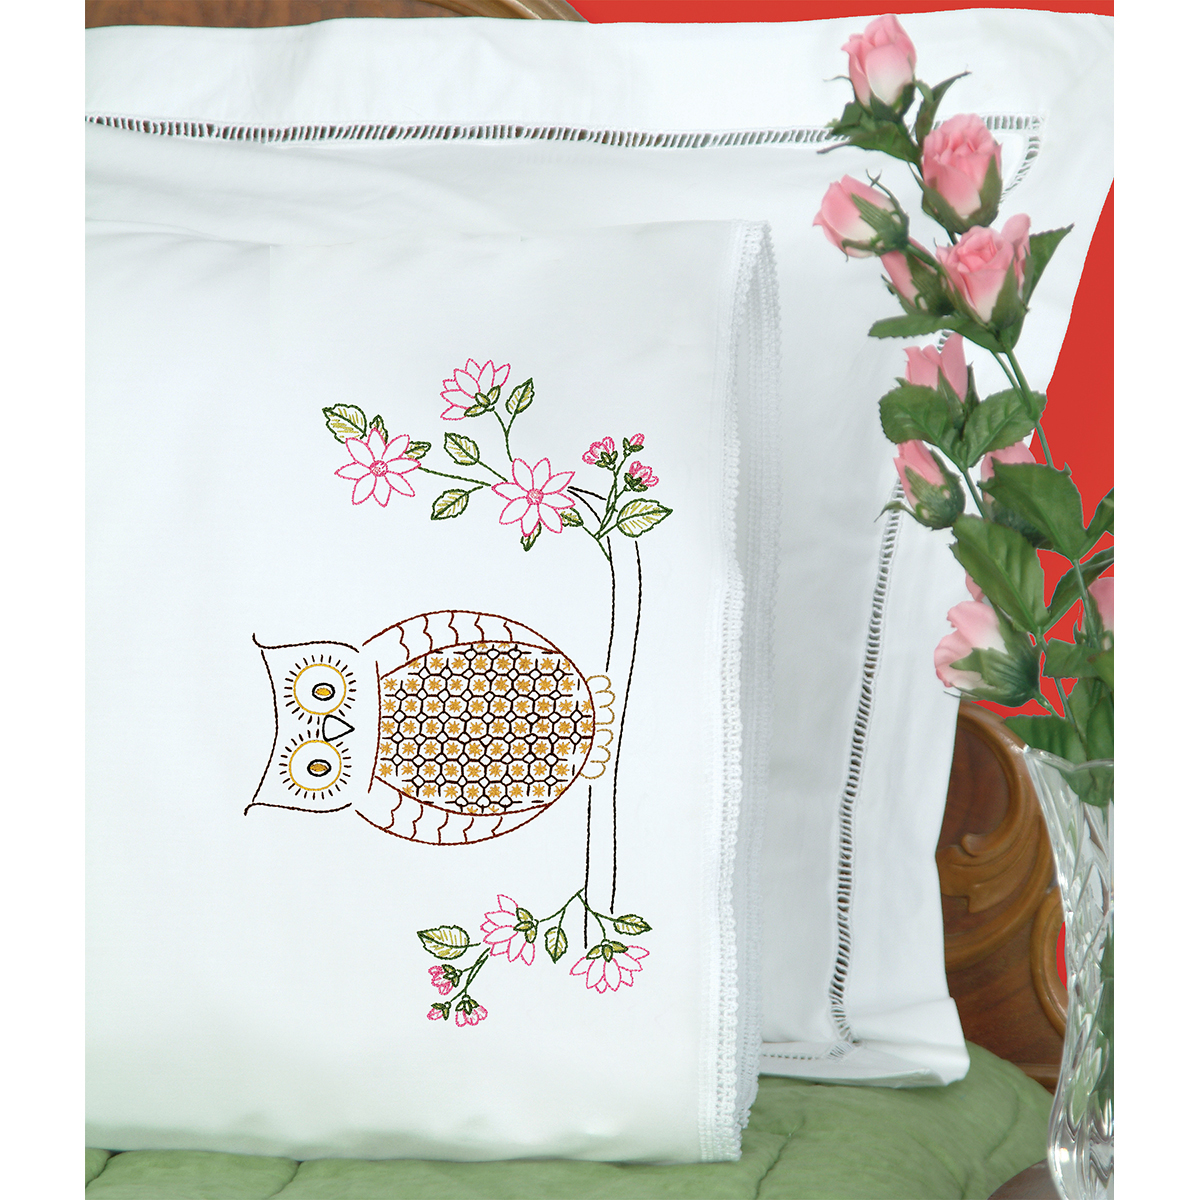 Jack Dempsey Stamped Pillowcases with White Lace Edge, Chicken Scratch Owl, 2-Pack Multi-Colored